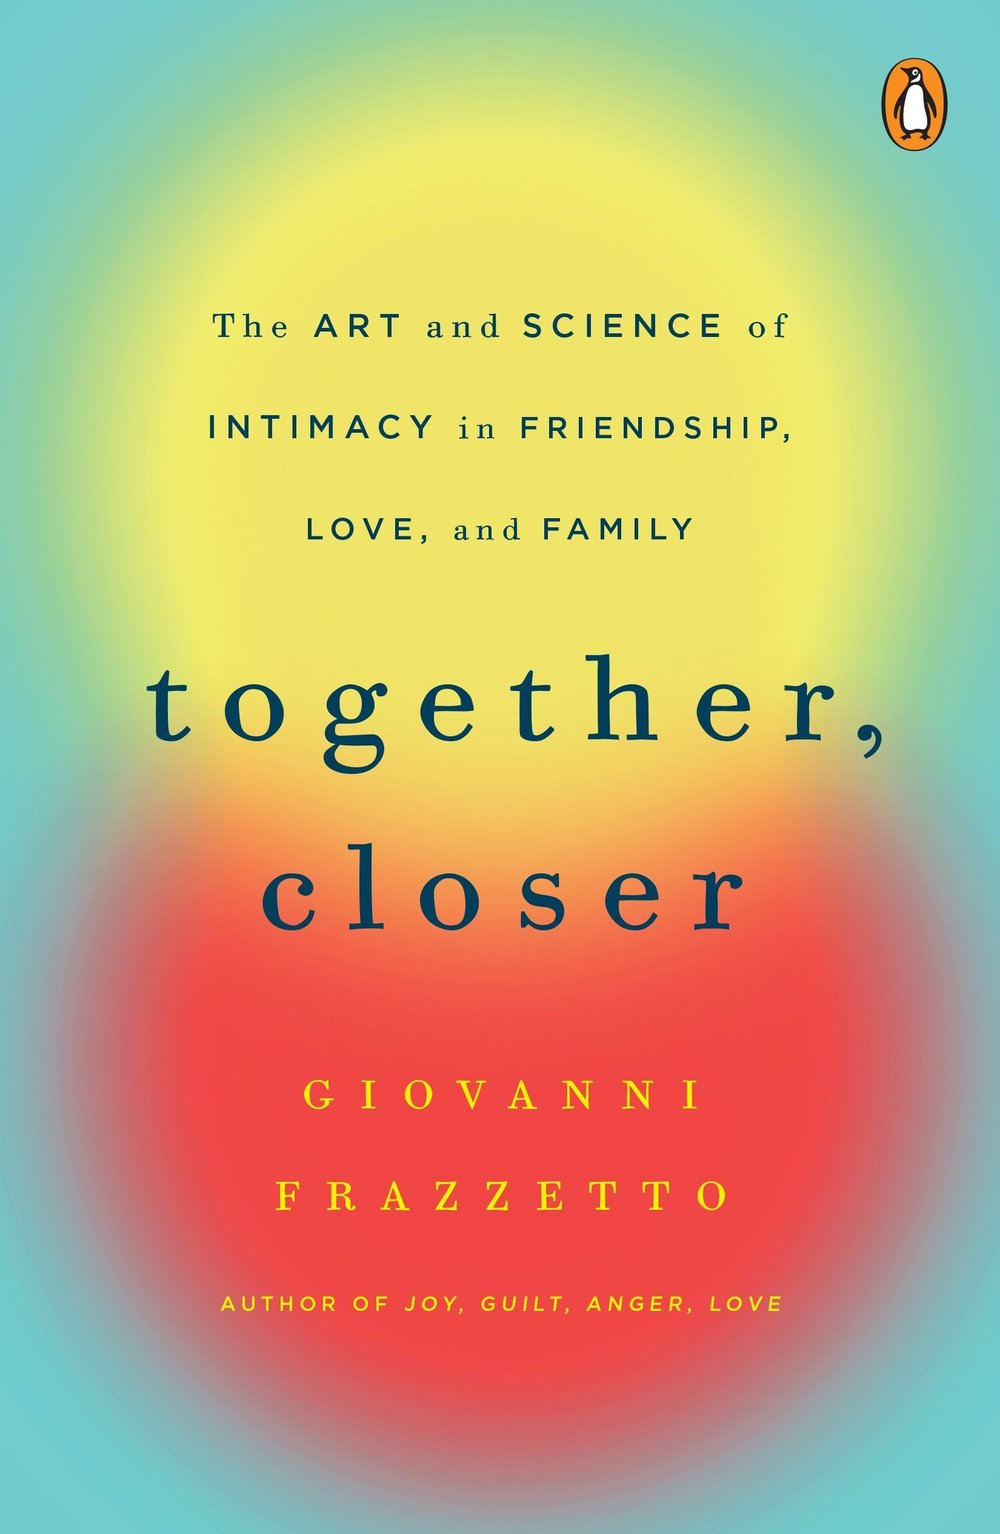 TOGETHER, CLOSER:   The Art and Science of Intimacy in Friendship, Love, and Family by Giovanni Frazzetto   Whether its romantic partners in a cycle of attraction and repulsion, a single woman in a fictional relationship she invented out of frustration with her love life, or a married couple in a years-long affair--how we interact with one another and our emotional barriers is one of the most fundamental and multi-layered aspects of who we are. But, intimacy can extend to relationships beyond the pale of romantic encounters: coping with the loss of a loved one, dealing with overbearing parents, and even celebrating the joys of our friends are areas ripe for examination on a behavioral, emotional, and neurological level. In  Closer , Giovanni Frazzetto brings a mastery of the neuroscience behind how we decide who to be close to, and tells captivating stories that demonstrate his signature blend of art and science.